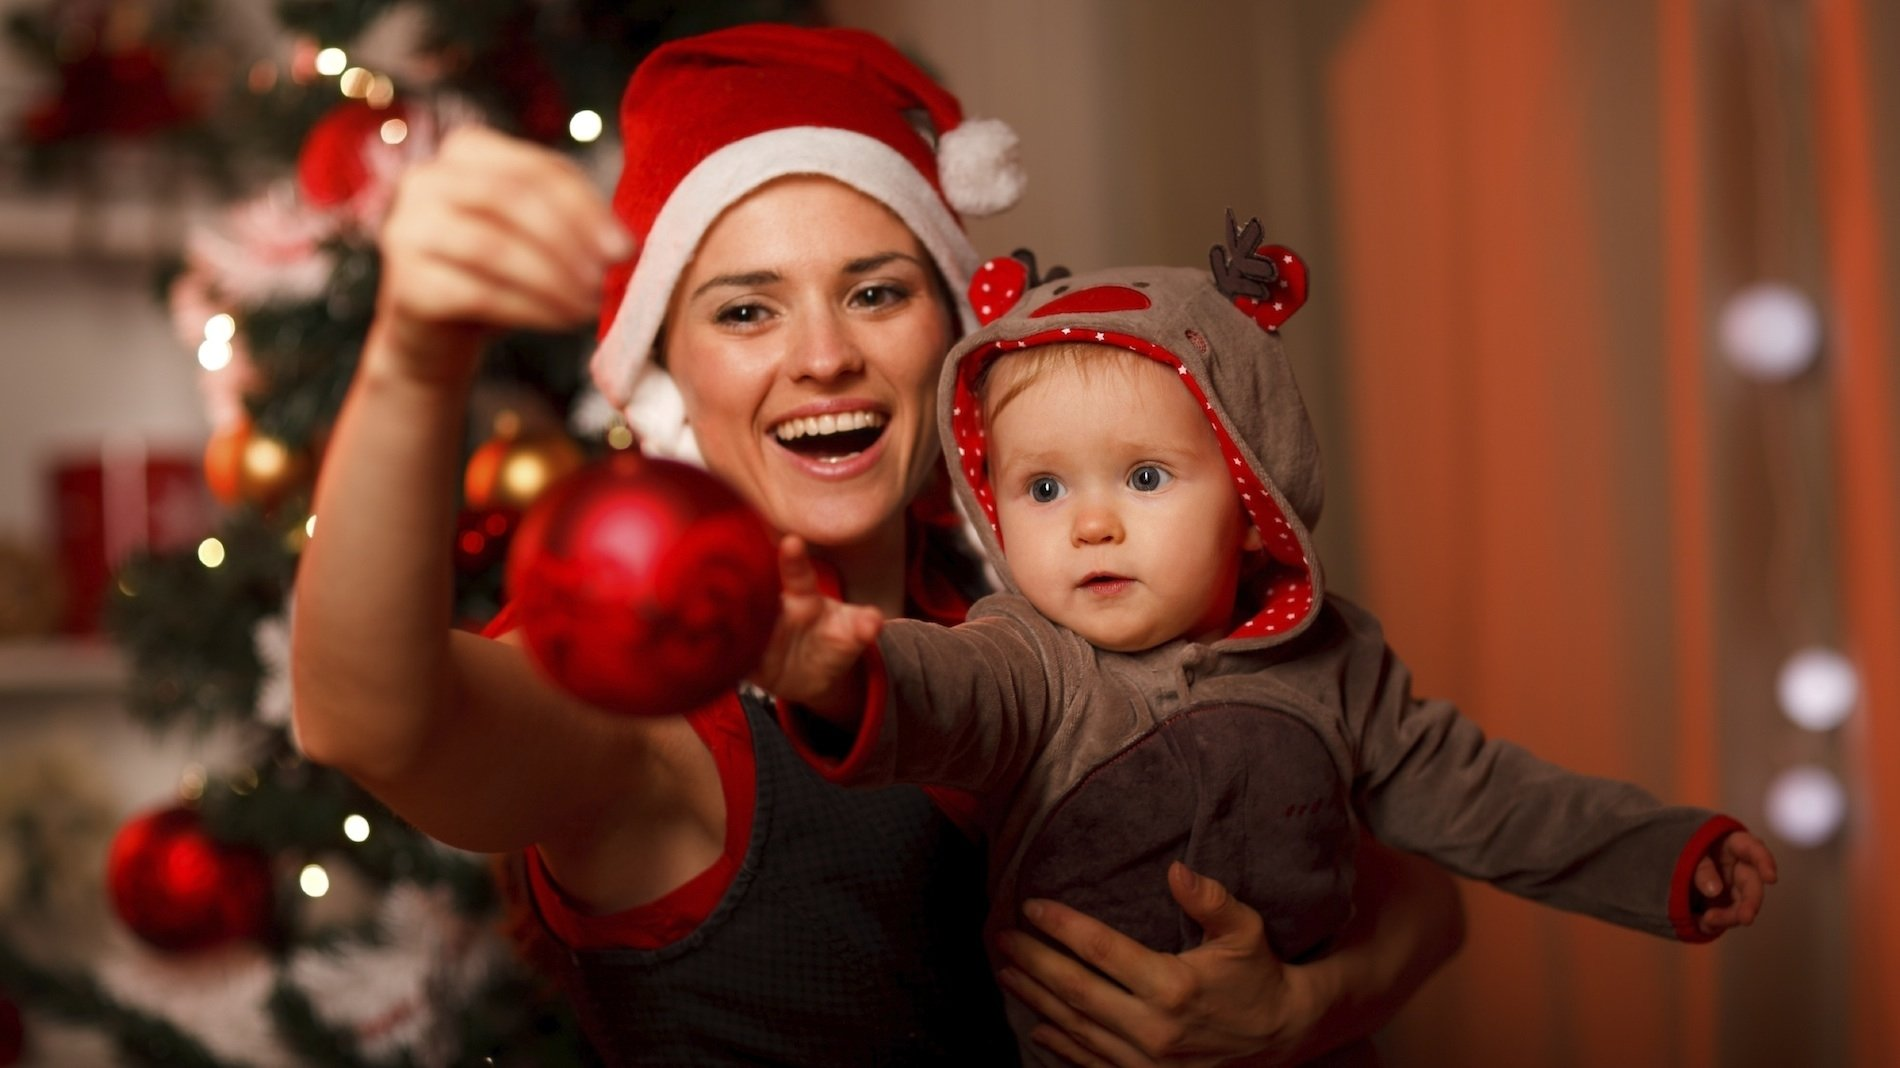 10 Trendy Family Christmas Photo Ideas With Baby how to make babys first christmas special blog lullaby nanny share 2020